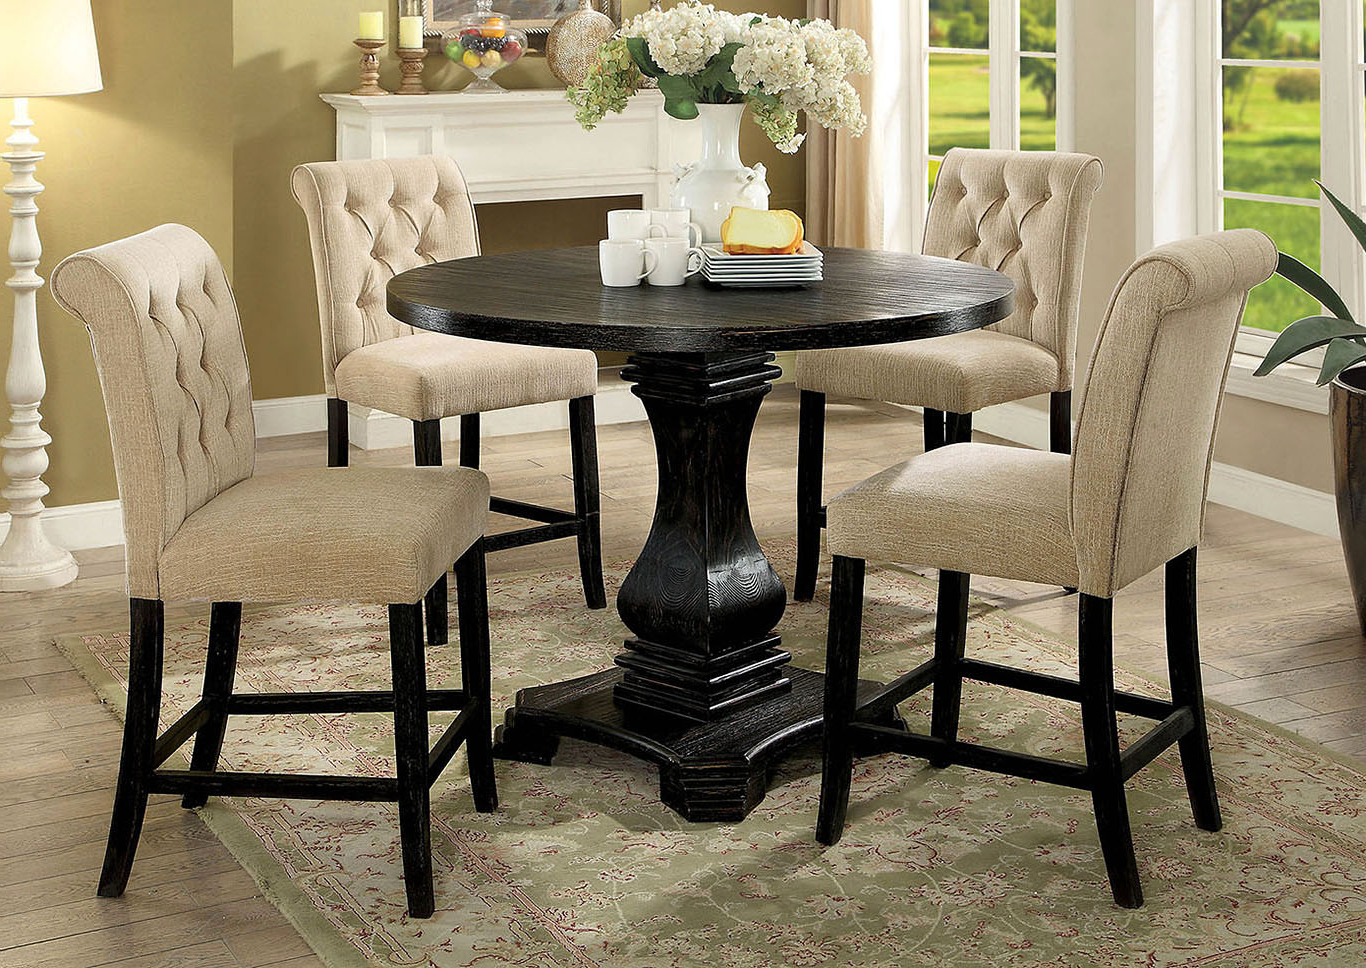 Well Liked Peaceful Living Furniture Nerissa Antique Black Round For Antique Black Wood Kitchen Dining Tables (Gallery 12 of 30)